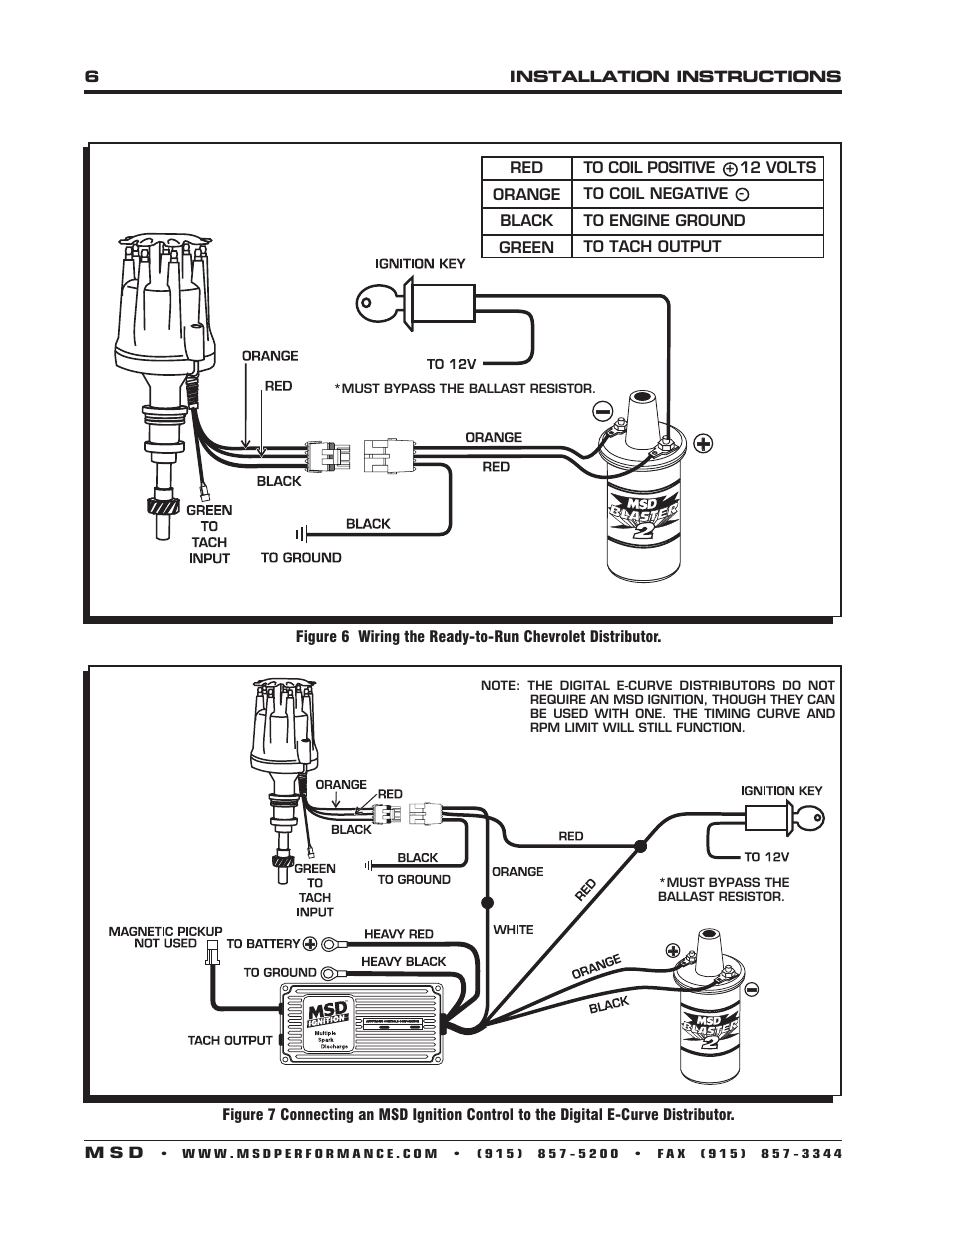 Ford 302 Distributor Wiring Diagram Schematics 94 Mustang Msd Harness 8503 289 E Curve Pro Billet Installation Standard